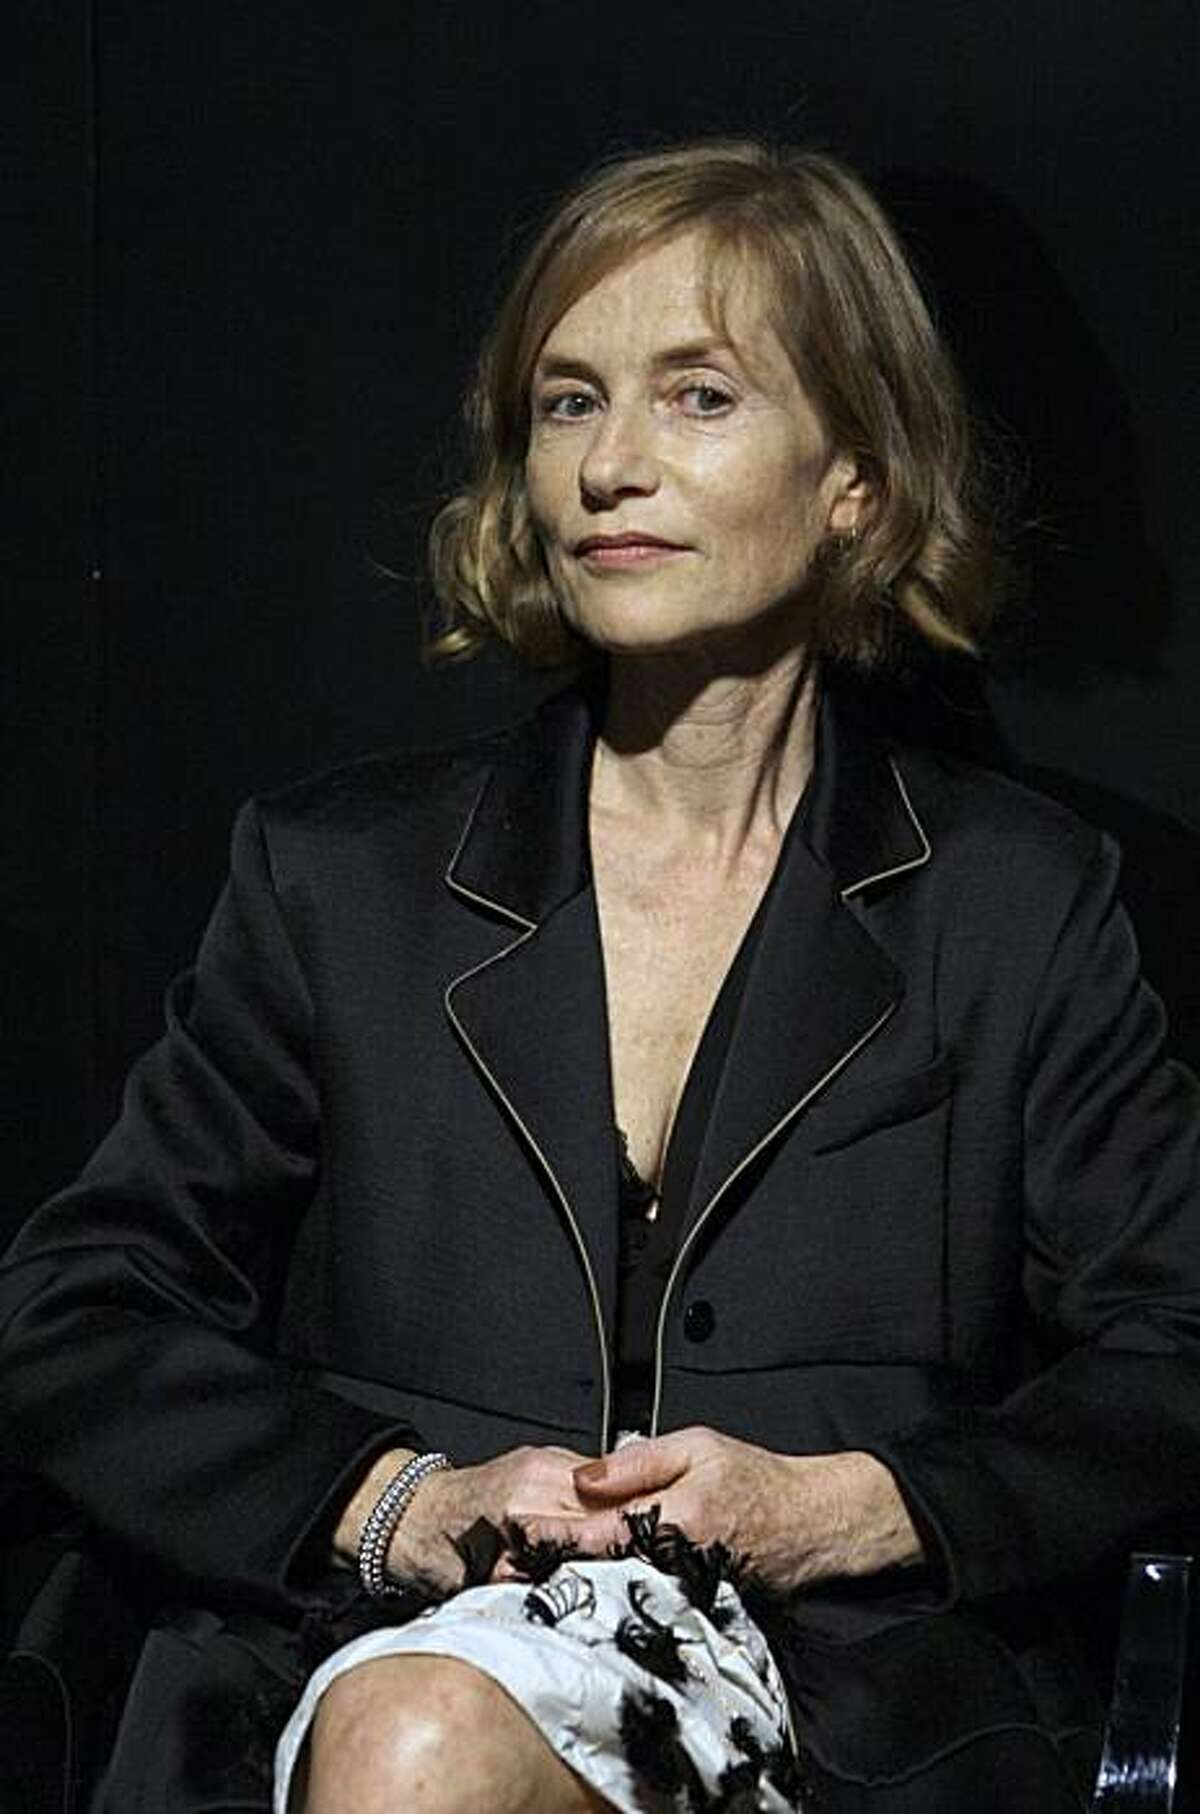 ** File ** In this Monday, Sept. 1, 2008 file photo, French actress Isabelle Huppert arrives for the Gucci Group Award during the 65th edition of the Venice Film Festival in Venice, Italy. French actress Isabelle Huppert will head the jury of the 62nd edition of the Cannes film festival in May, organizers announced Friday, Jan. 2, 2009. Huppert, 55, who has starred in more than 90 films, has twice won the best actress award at the prestigious film festival on the French Riviera. (AP Photo/Joel Ryan, File)